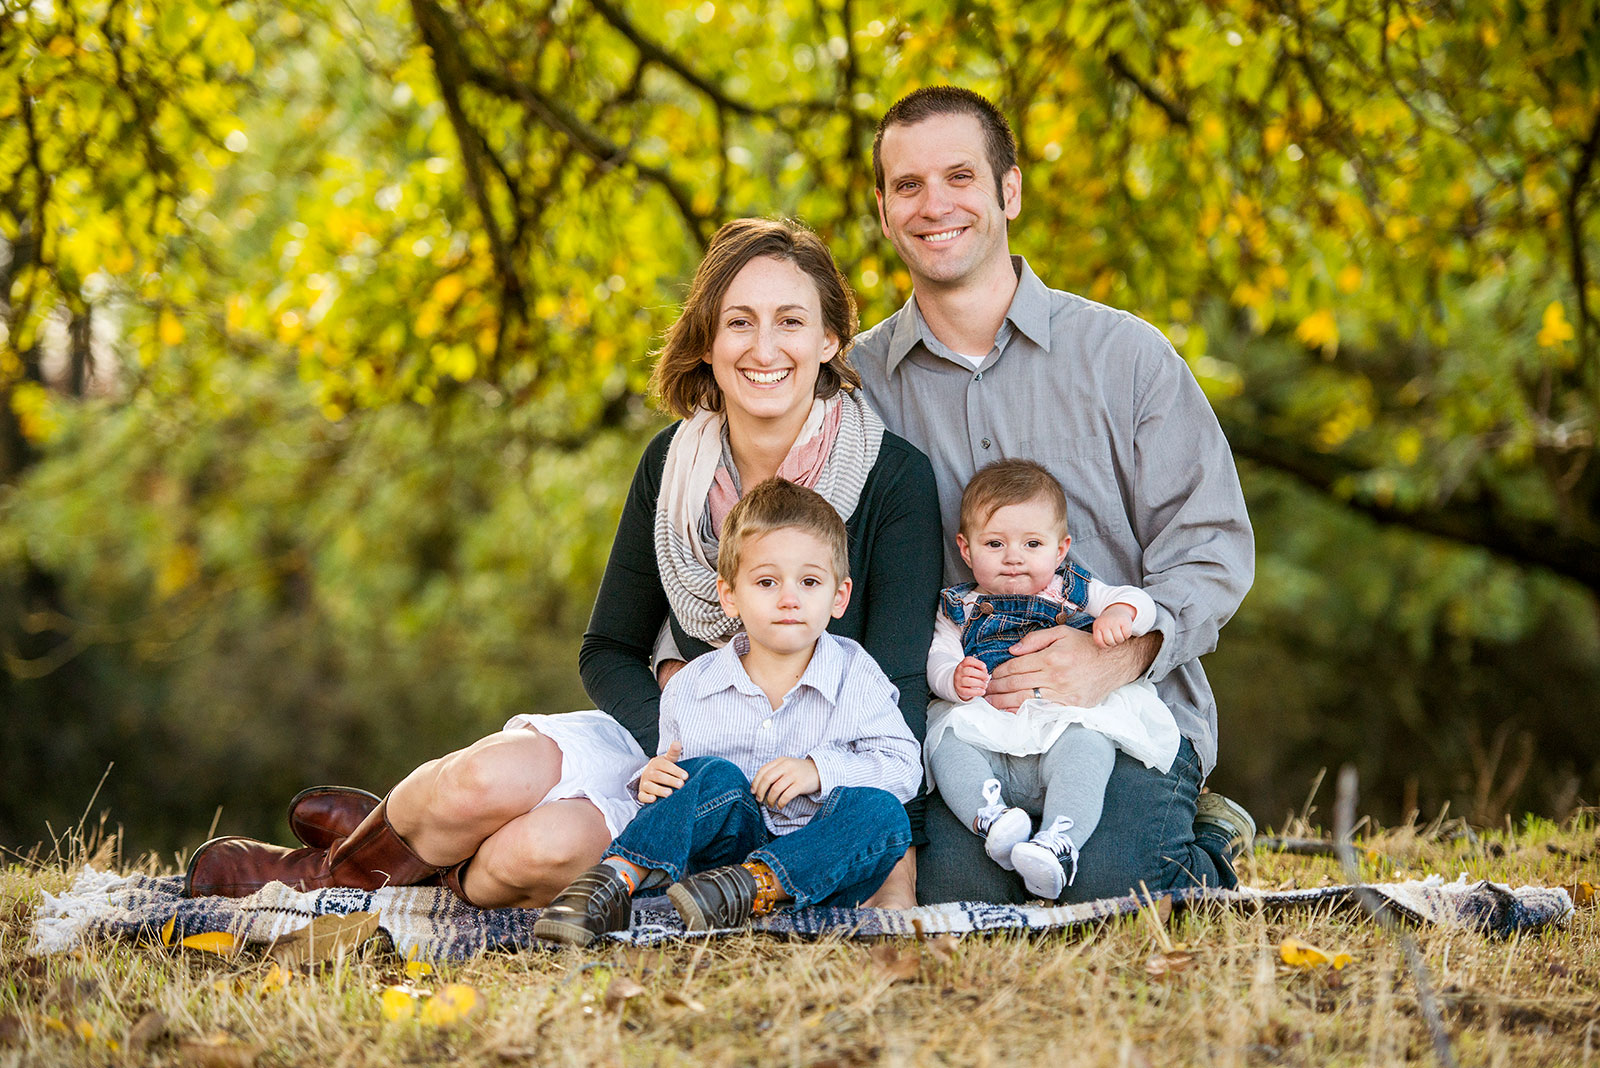 koepnick-family-morgan-hill-photography-01